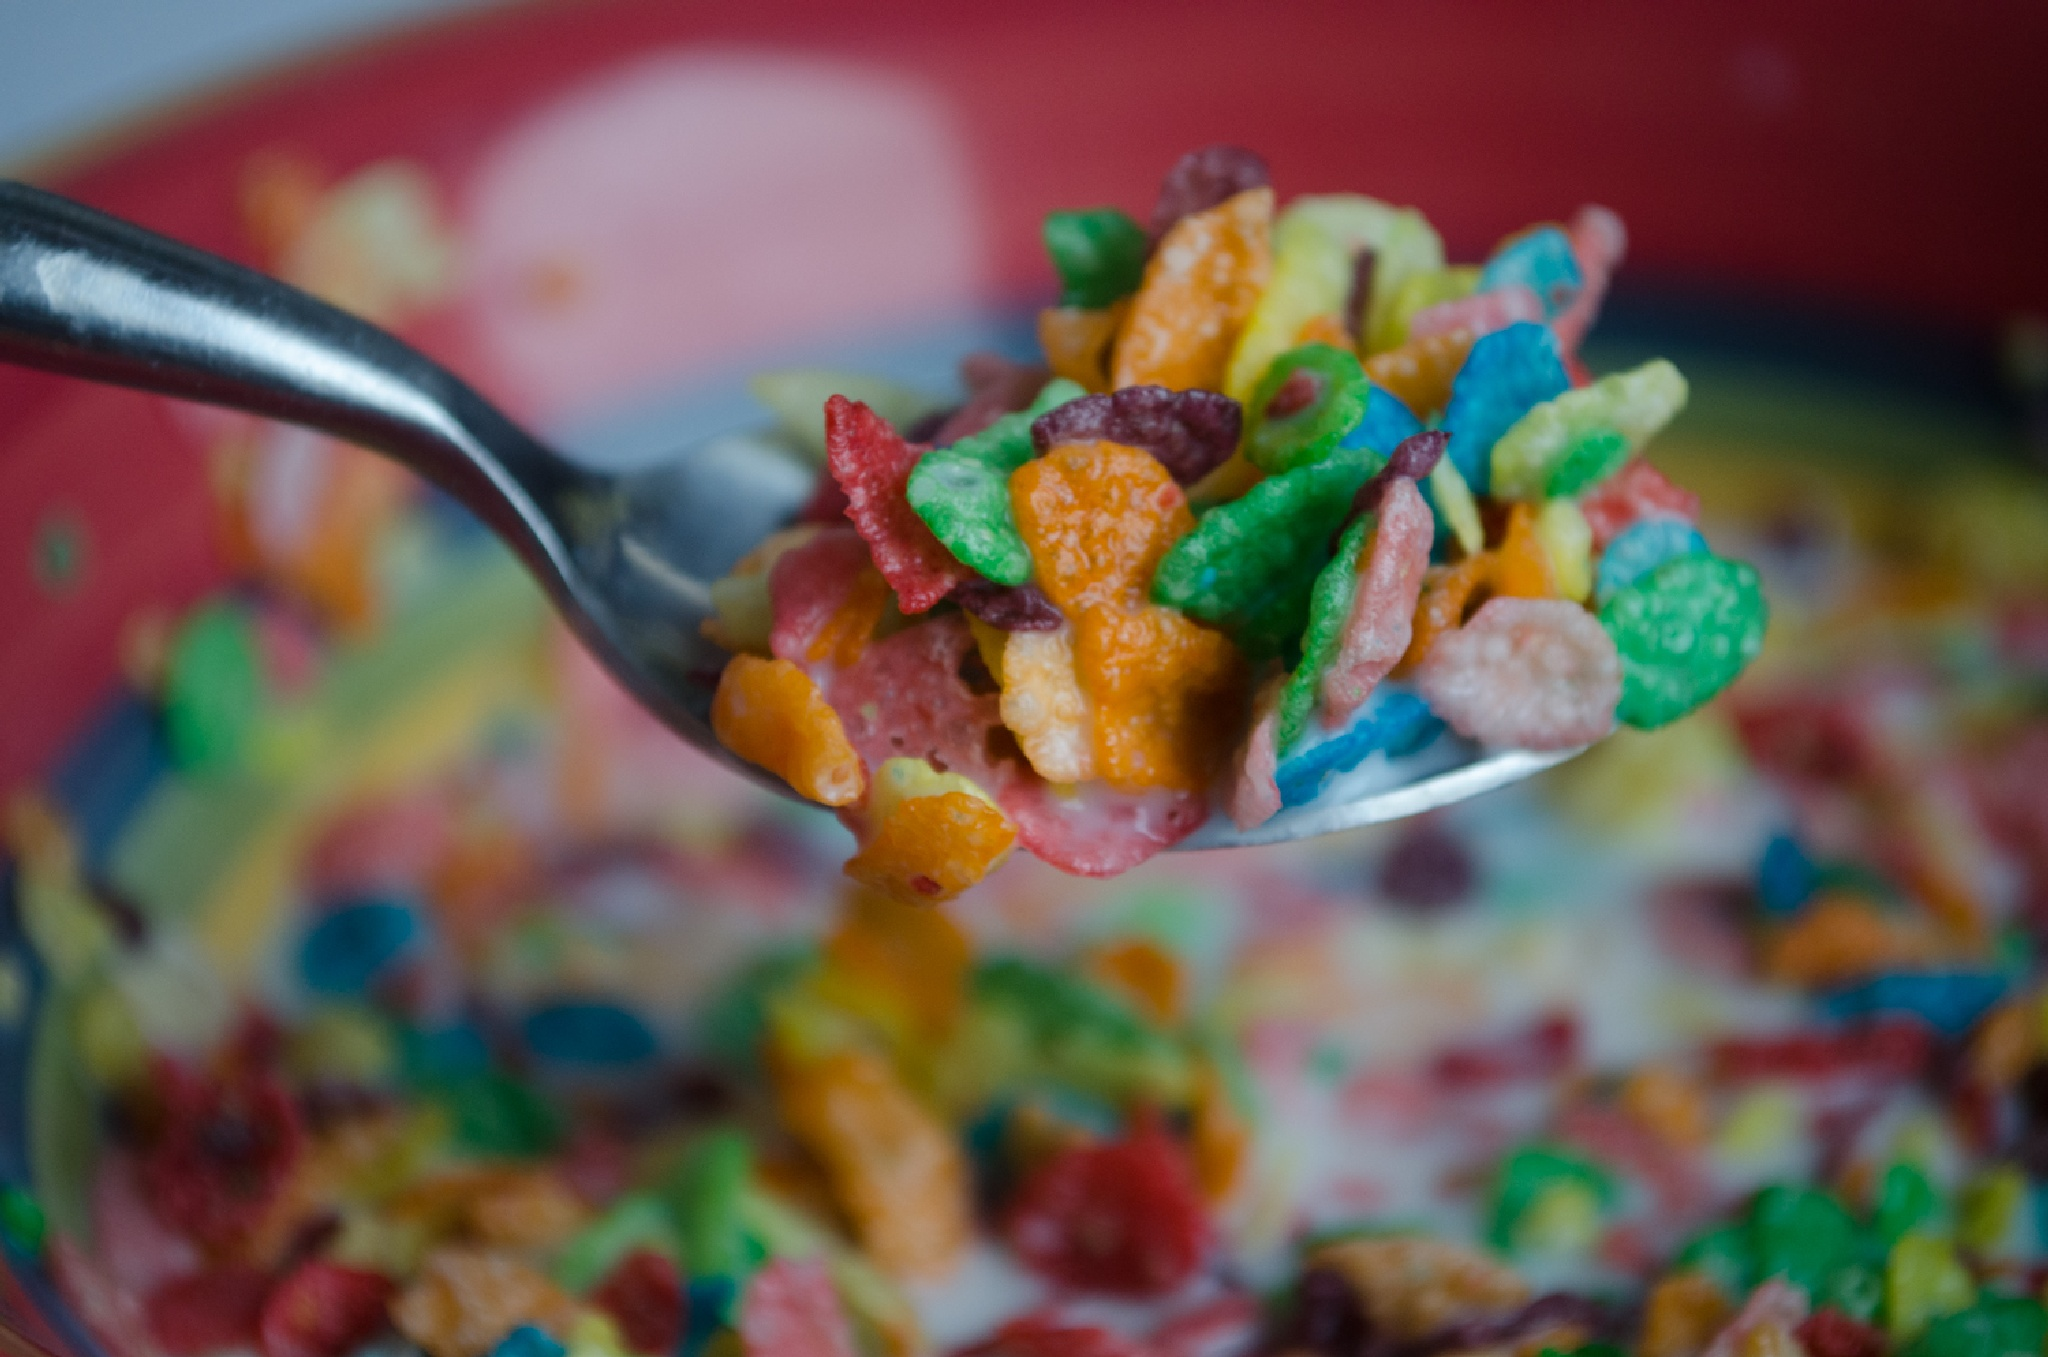 Cereal by Eva Osterlee